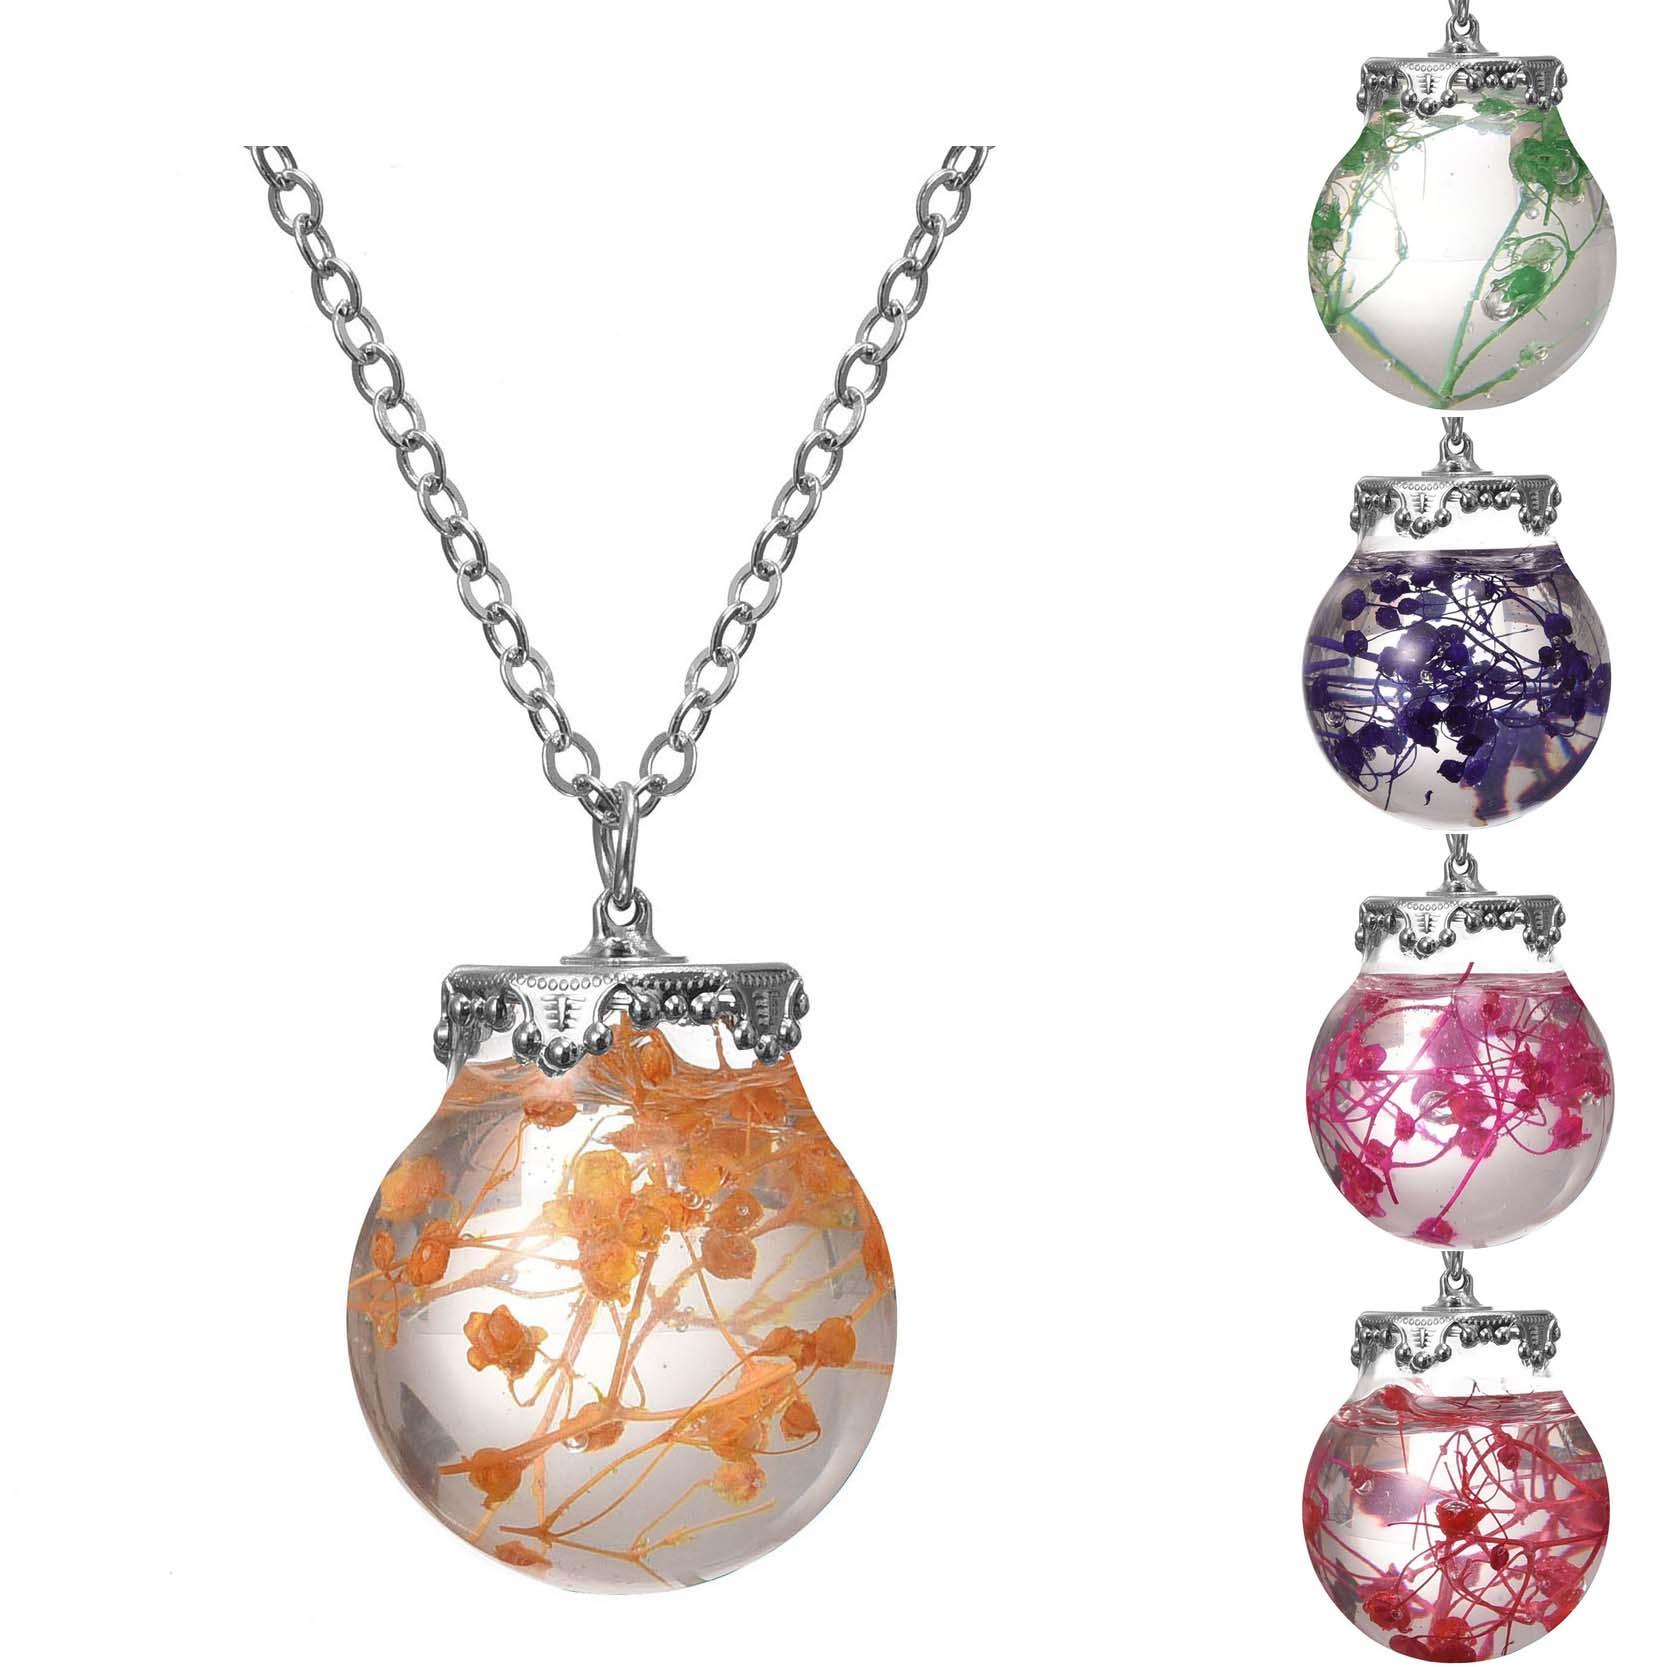 Beach Necklace Silver Plated with Glass Bottle Sea Ocean Life Dried Flower Choker Long Pendant Necklace for Women Party(China (Mainland))